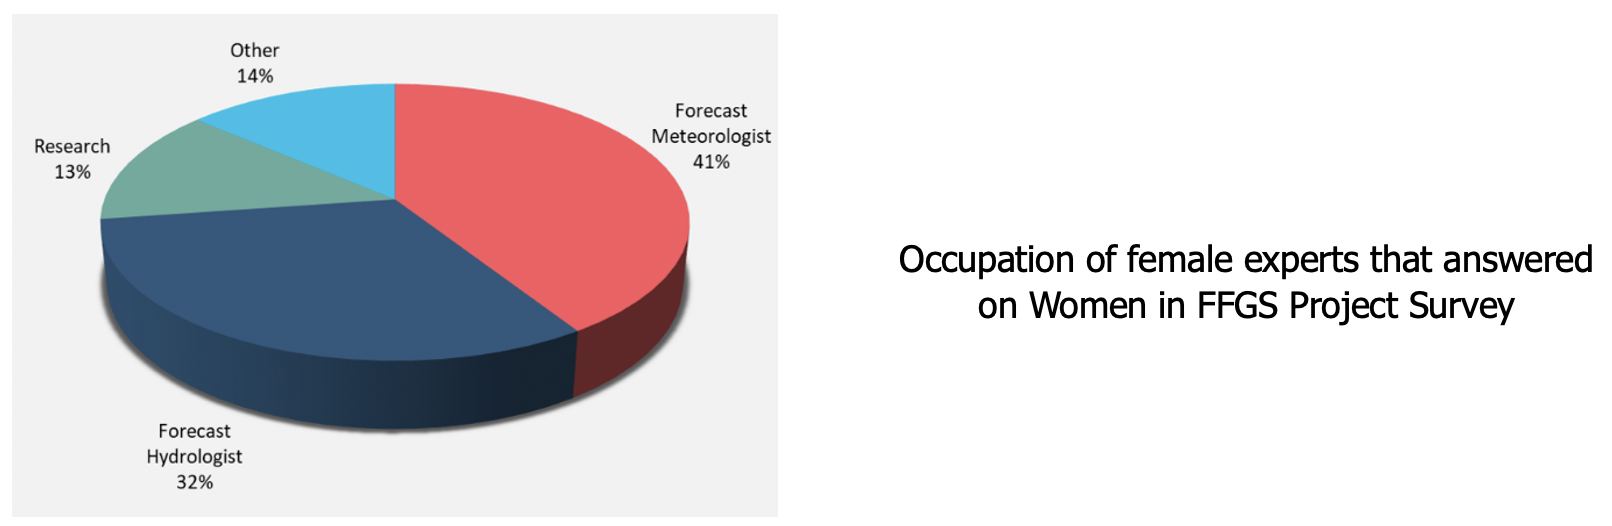 Occupation of female experts